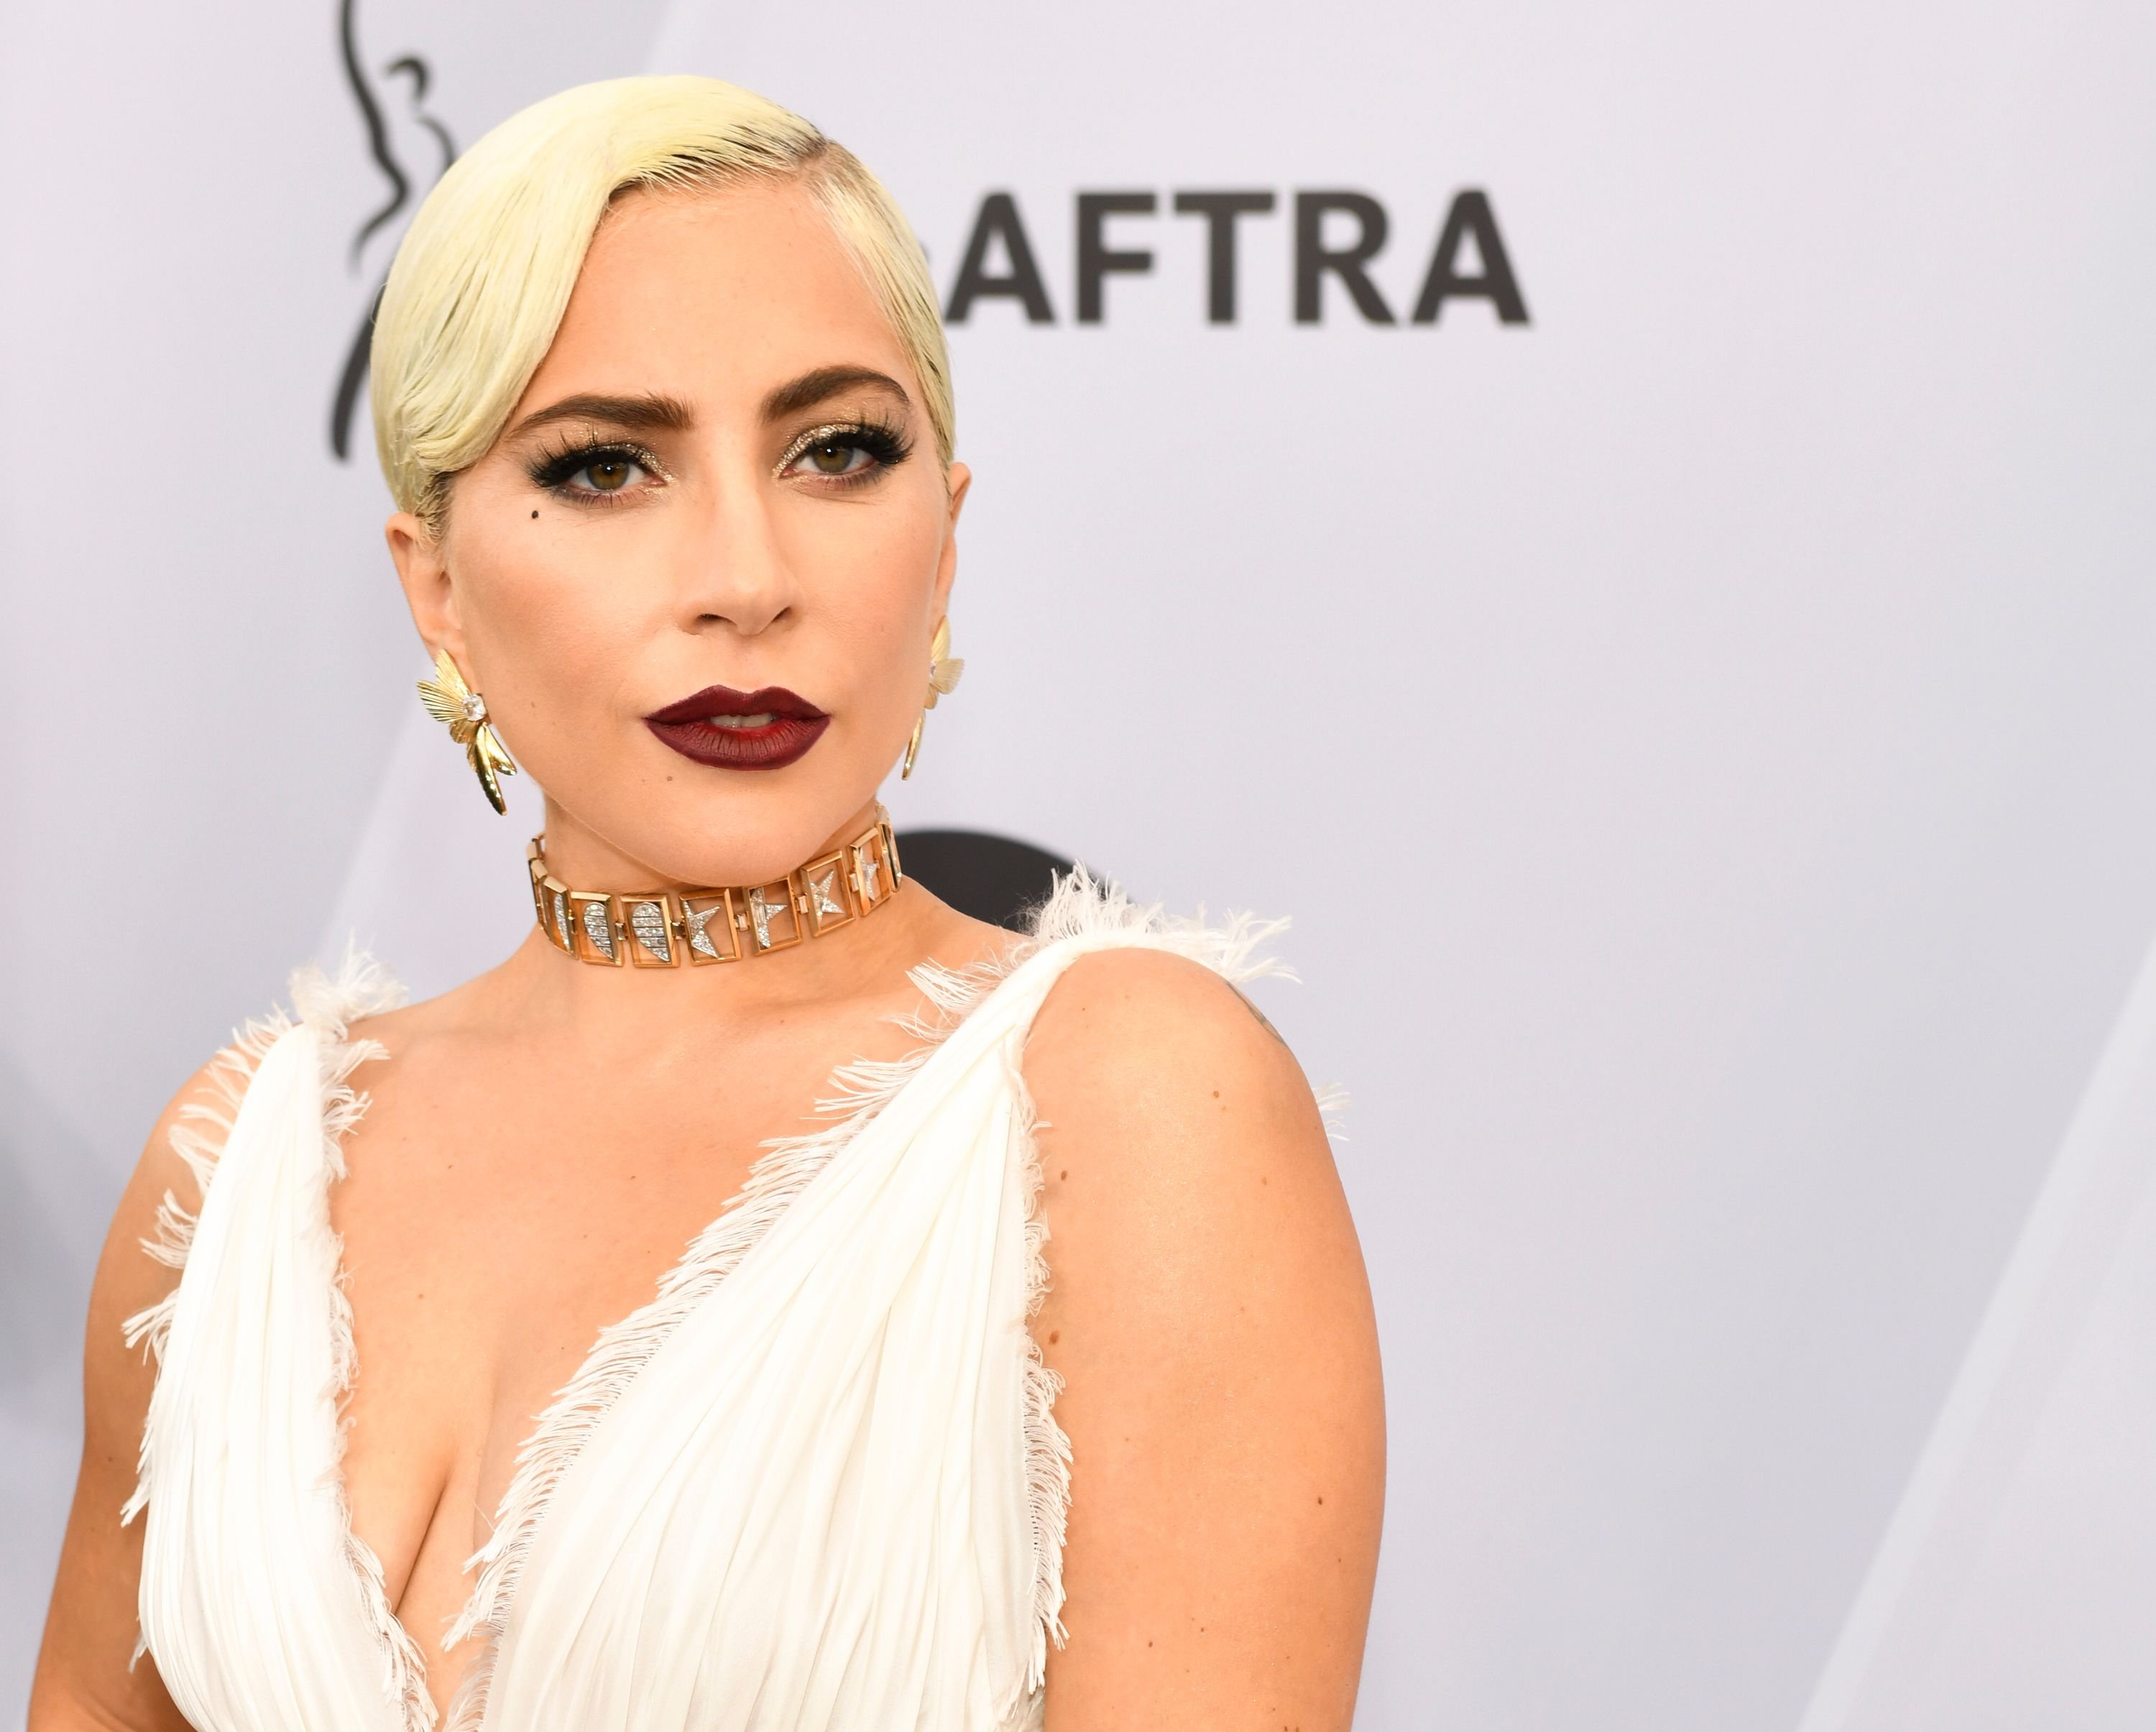 Lady Gaga at the 25th Annual Screen ActorsGuild Awards at The Shrine Auditorium on January 27, 2019 in Los Angeles, California. | Photo: Getty Images